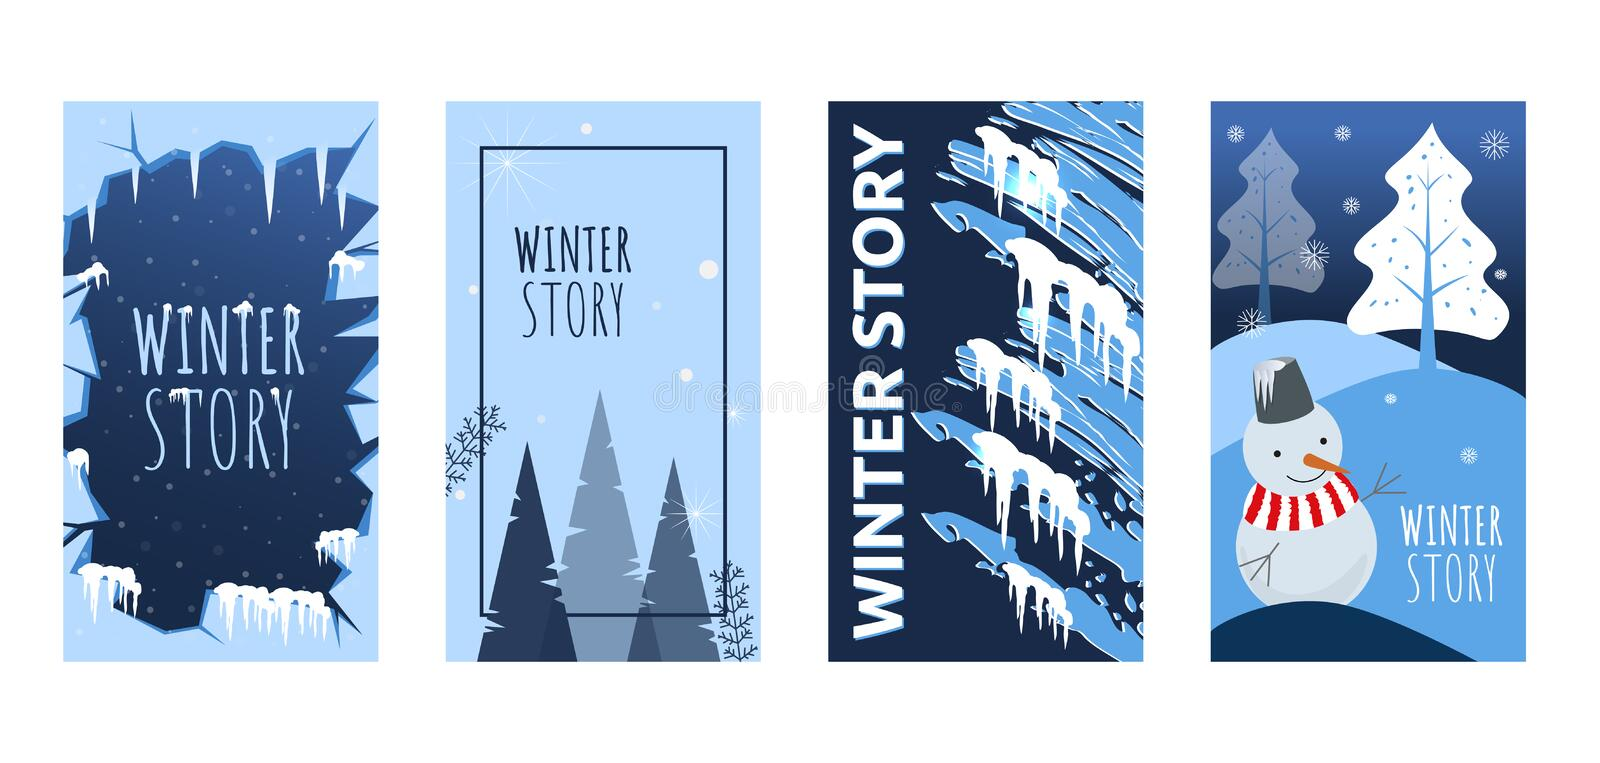 Set of abstract winter backgrounds for social media stories. Colorful winter banners with snowy scenes. Best for banner, flyer, in stock illustration